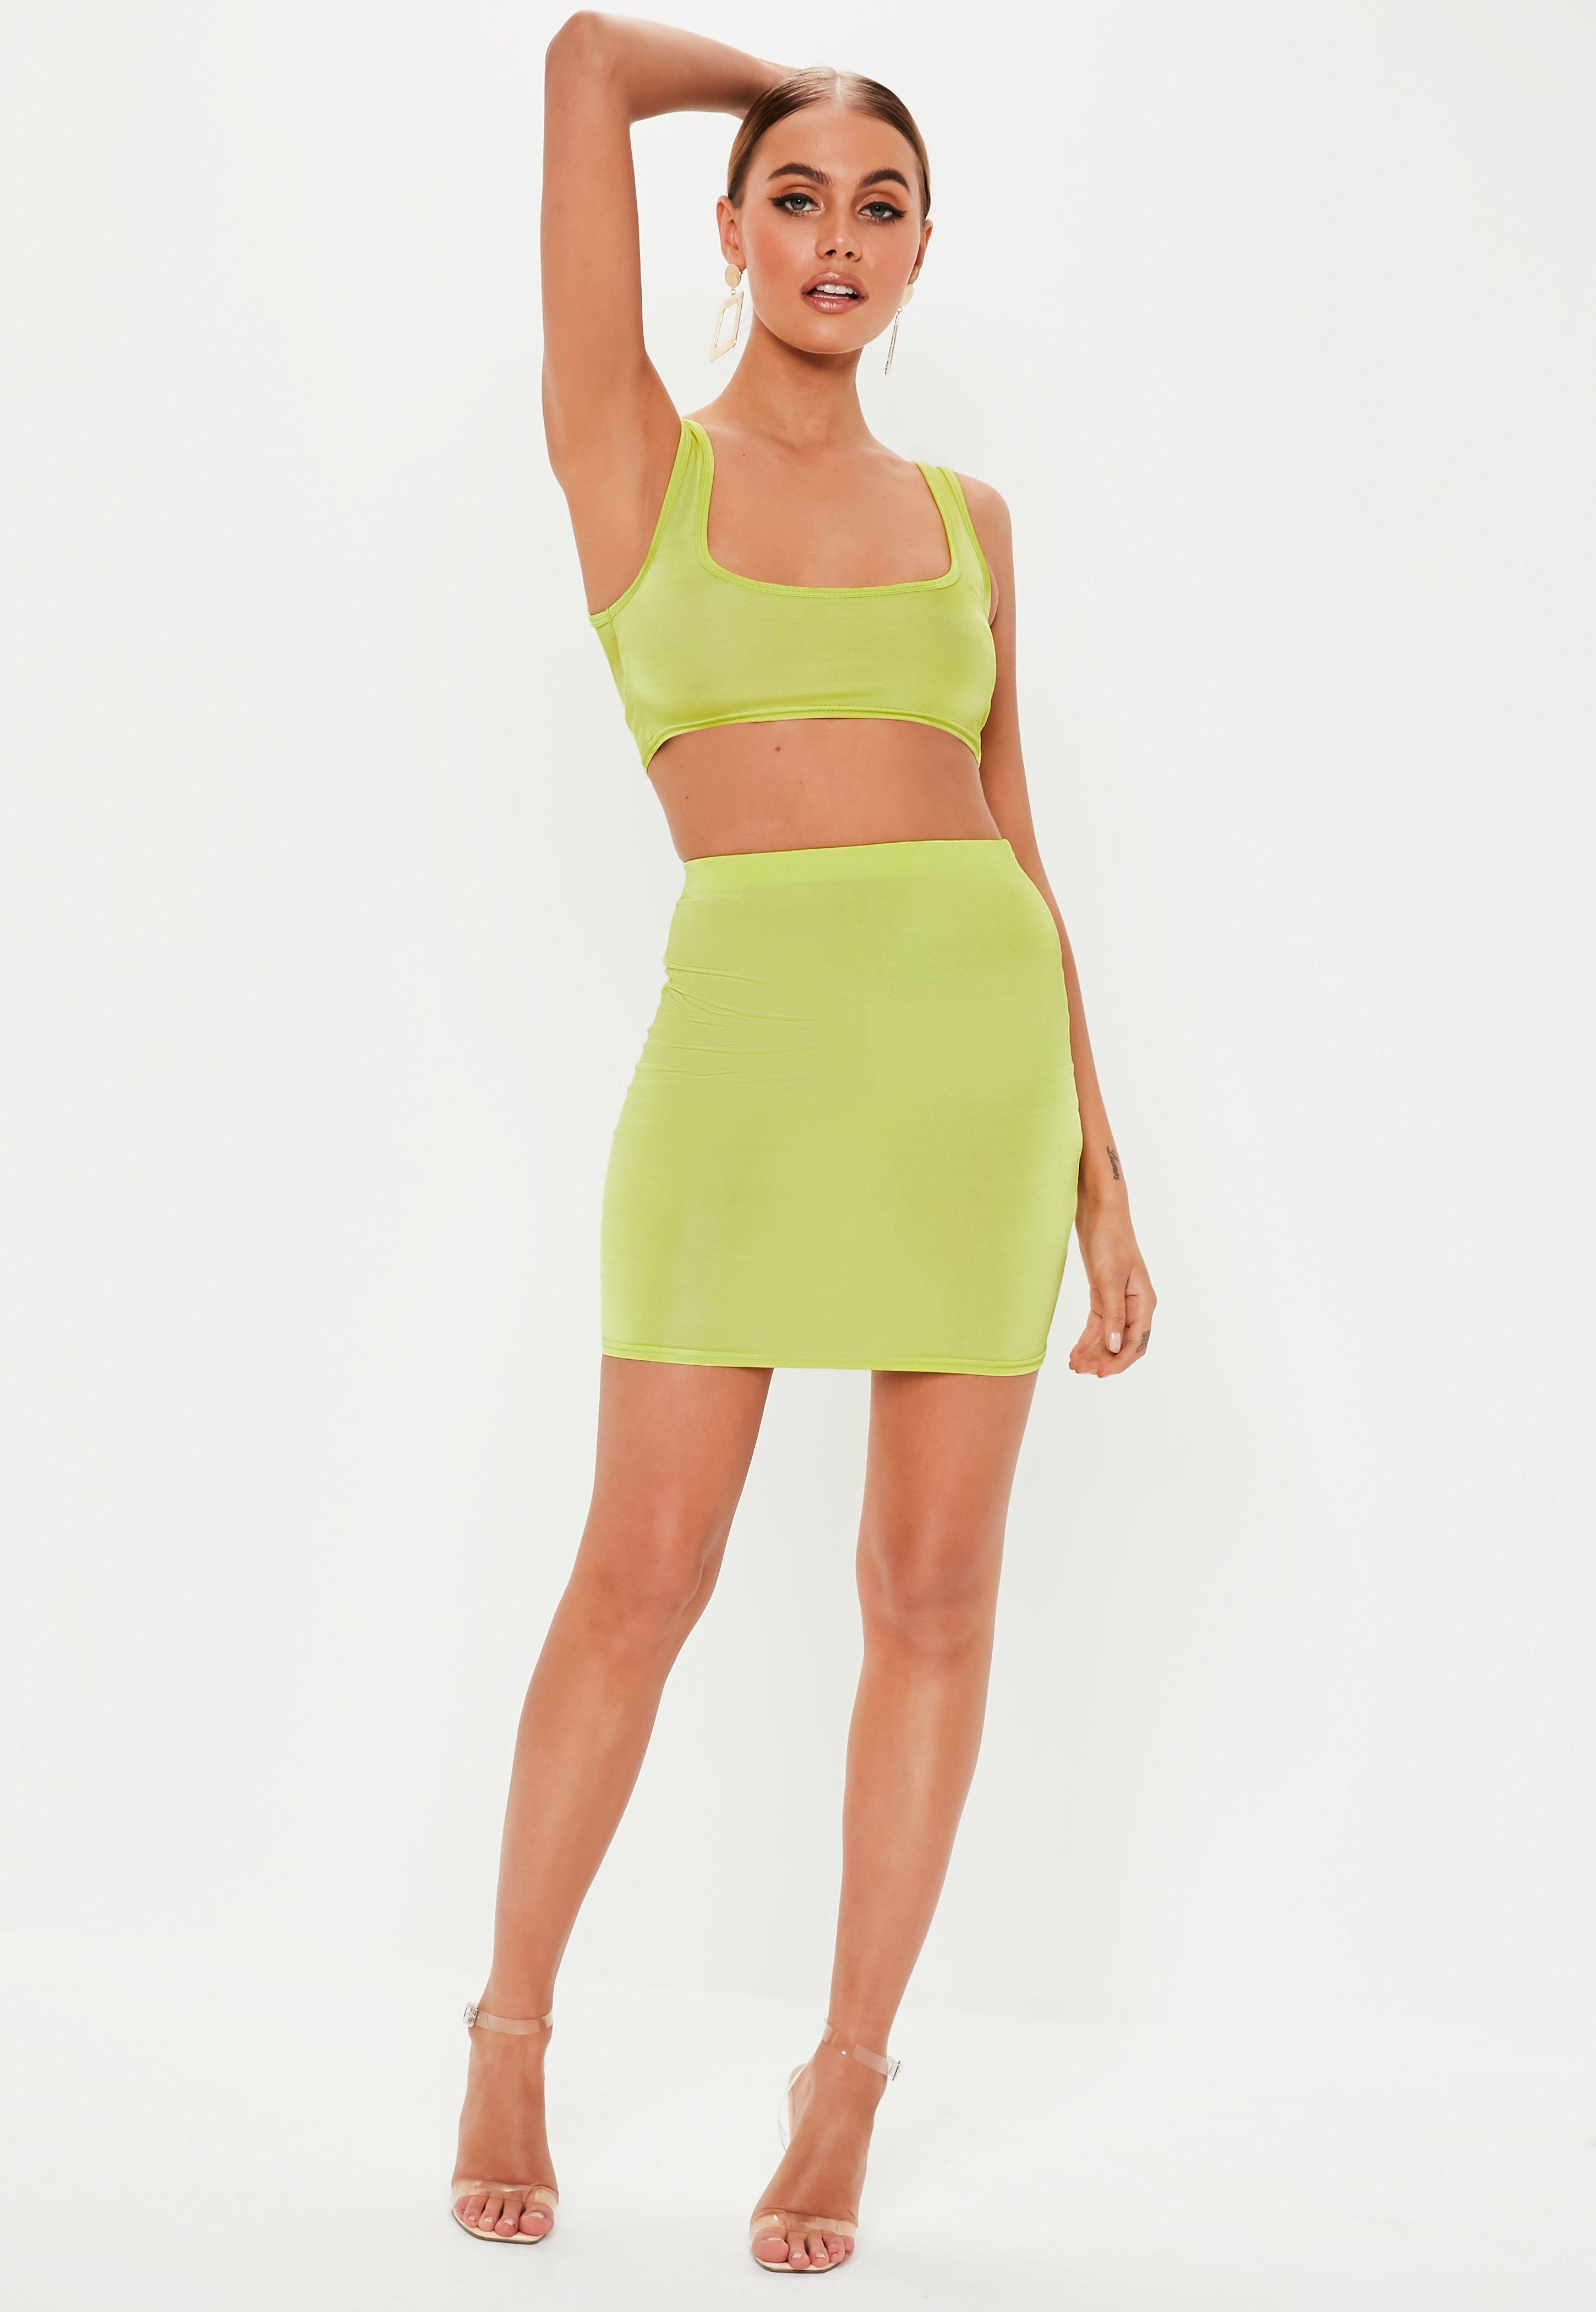 8edfdbe7e46 Lyst - Missguided Lime Disco Scoop Neck Bralet in Green